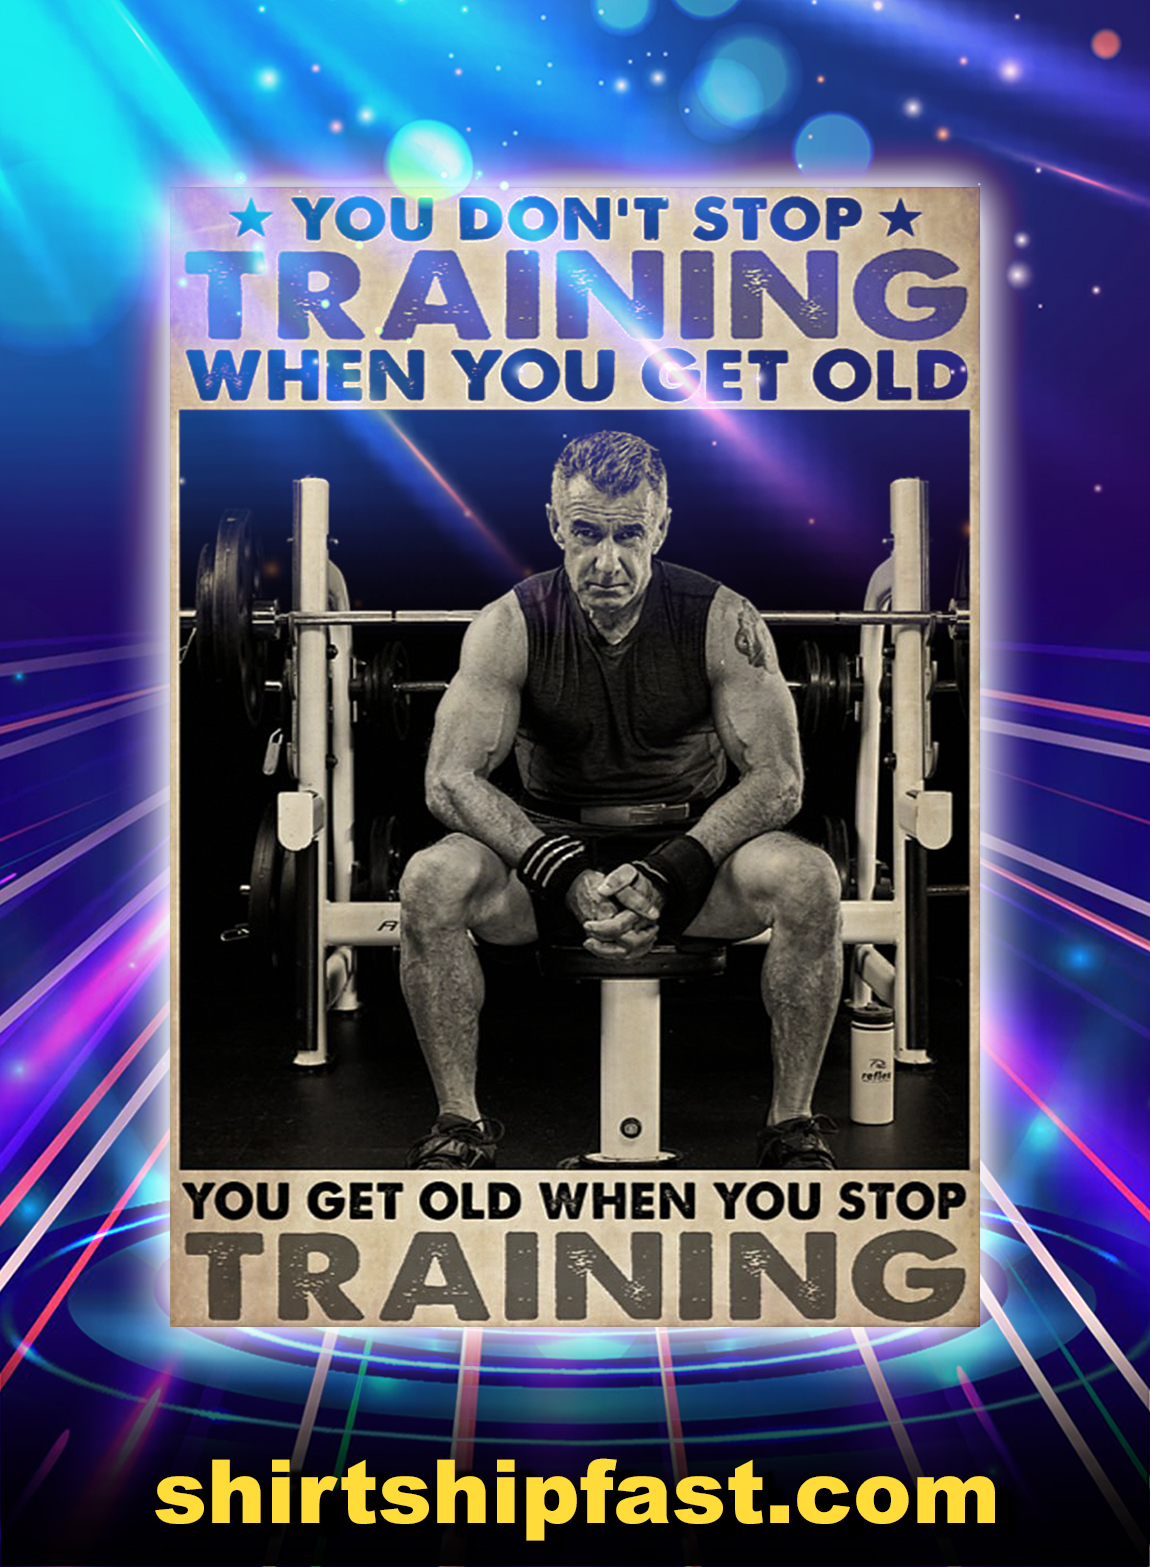 Old man bodybuilding you don't stop training when you get old poster - A3